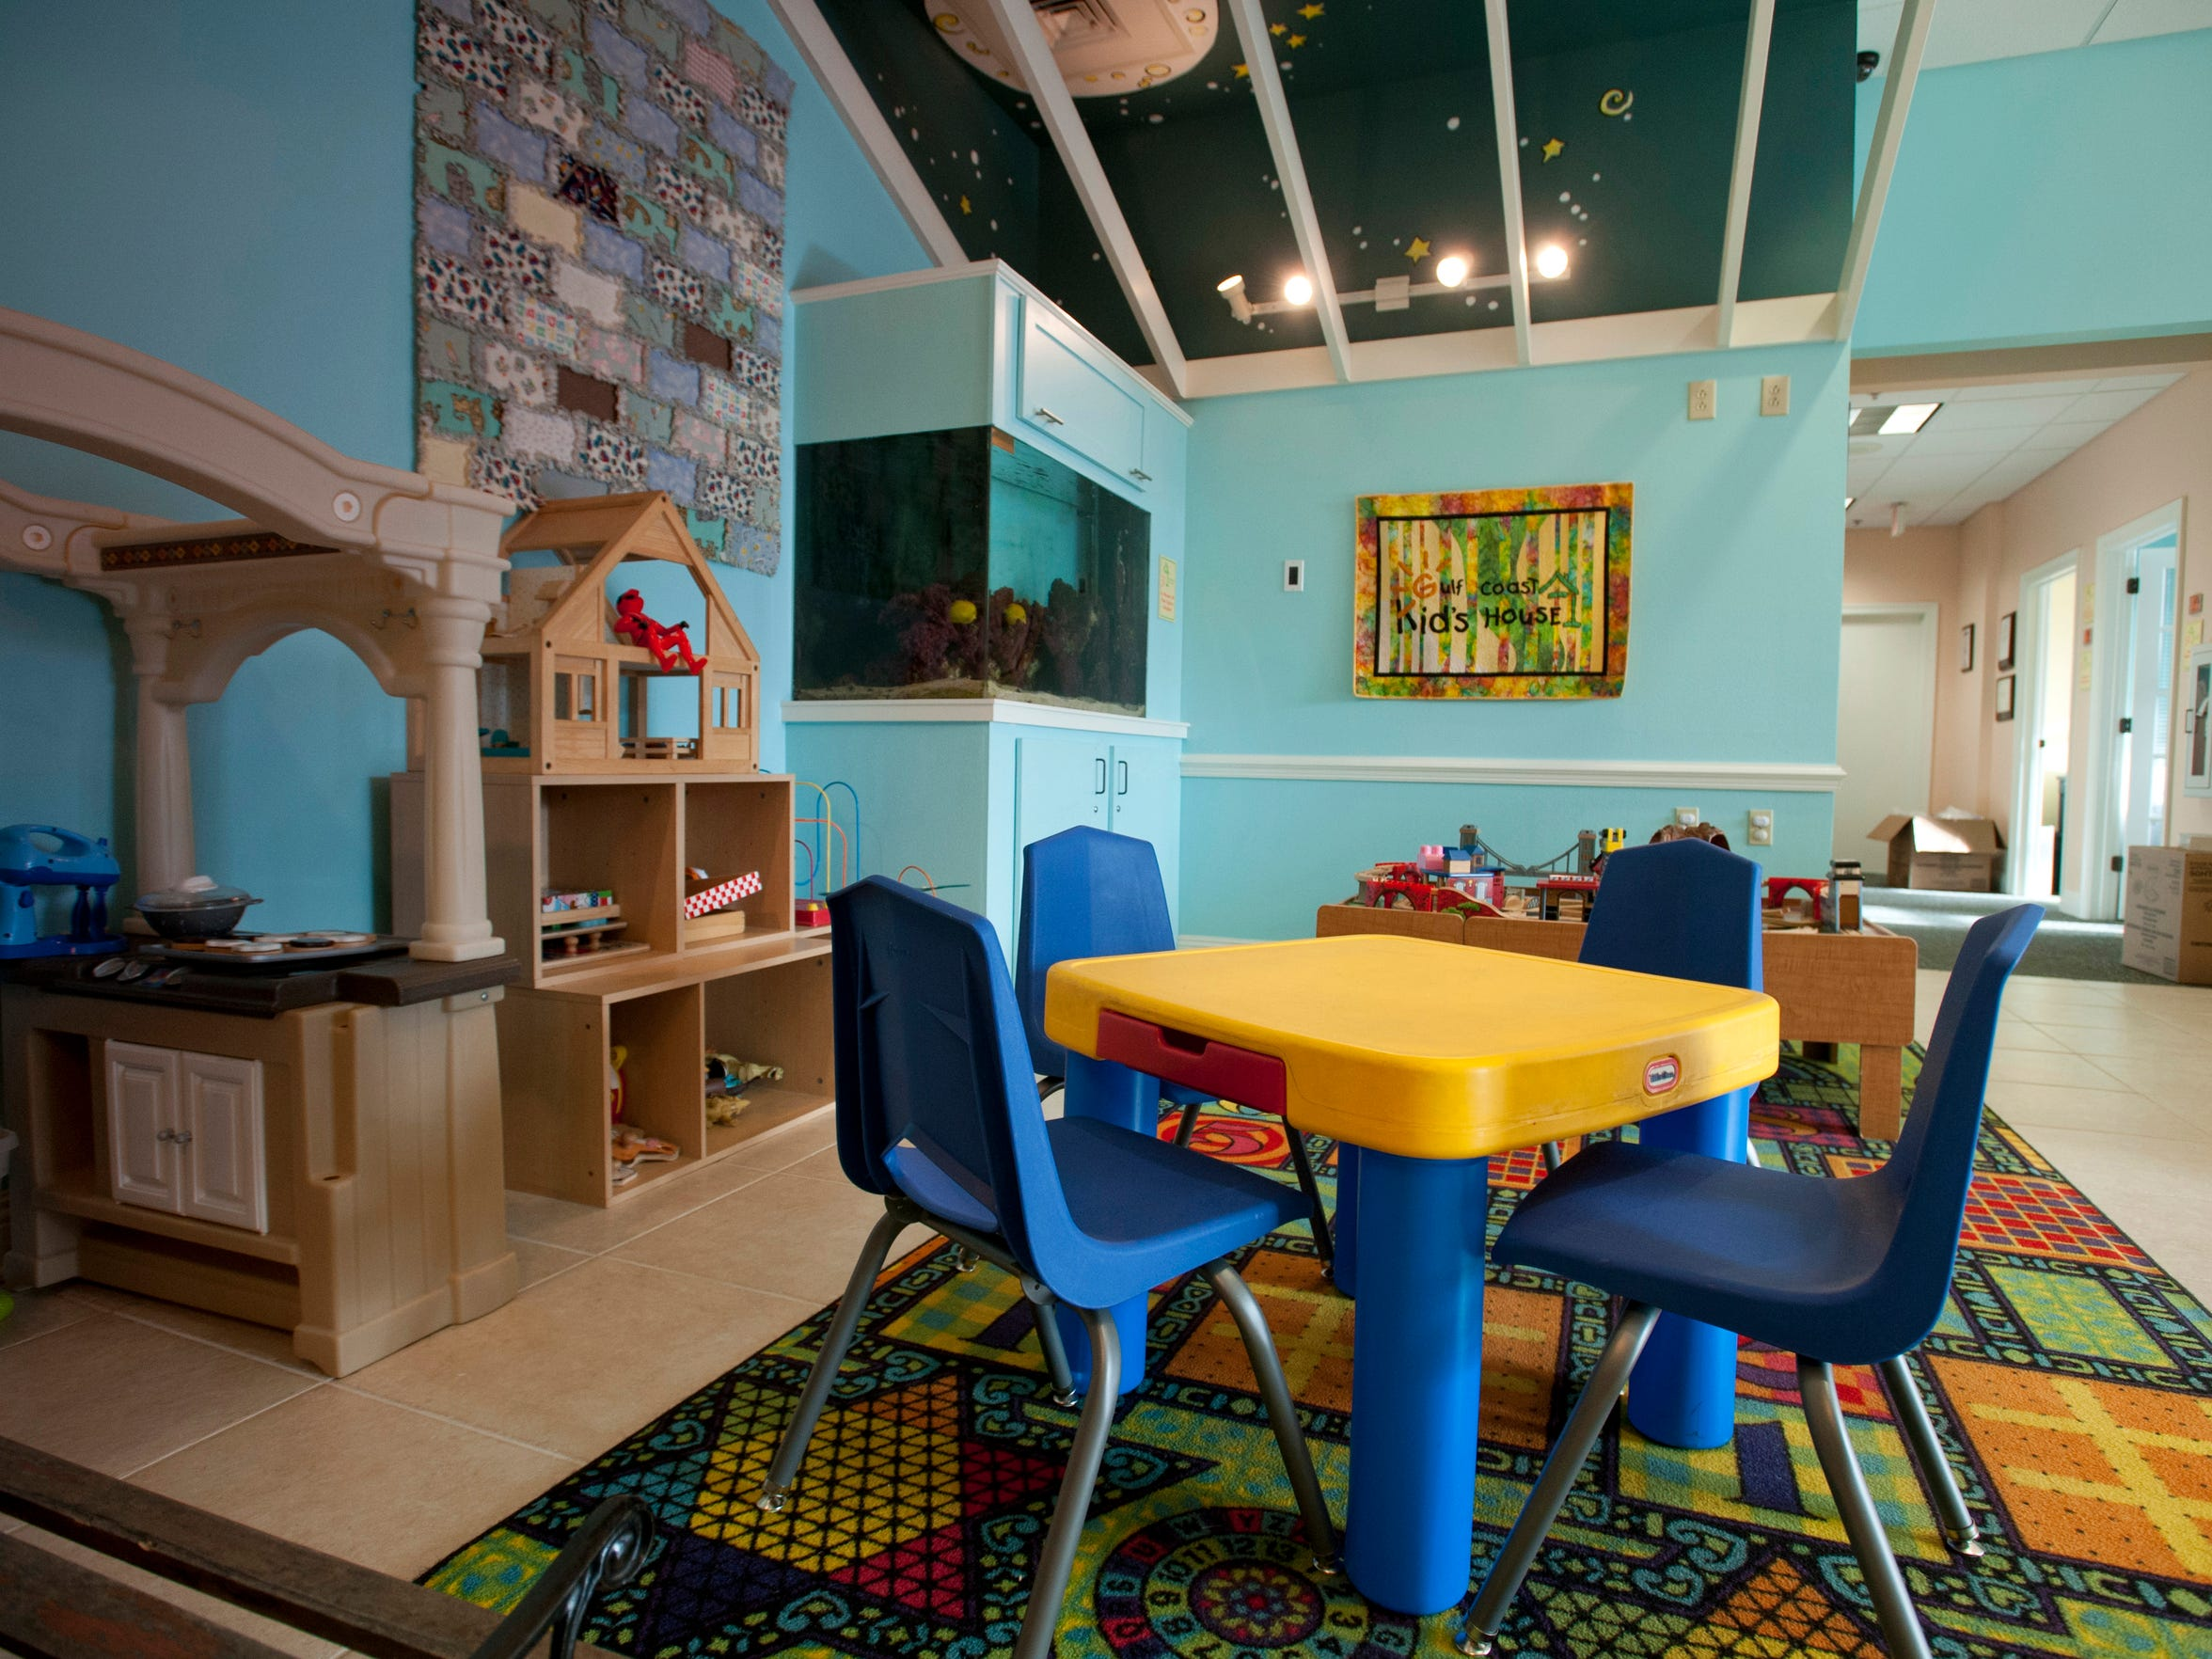 Geometric patterns and inviting colors decorate the Gulf Coast Kid's House.